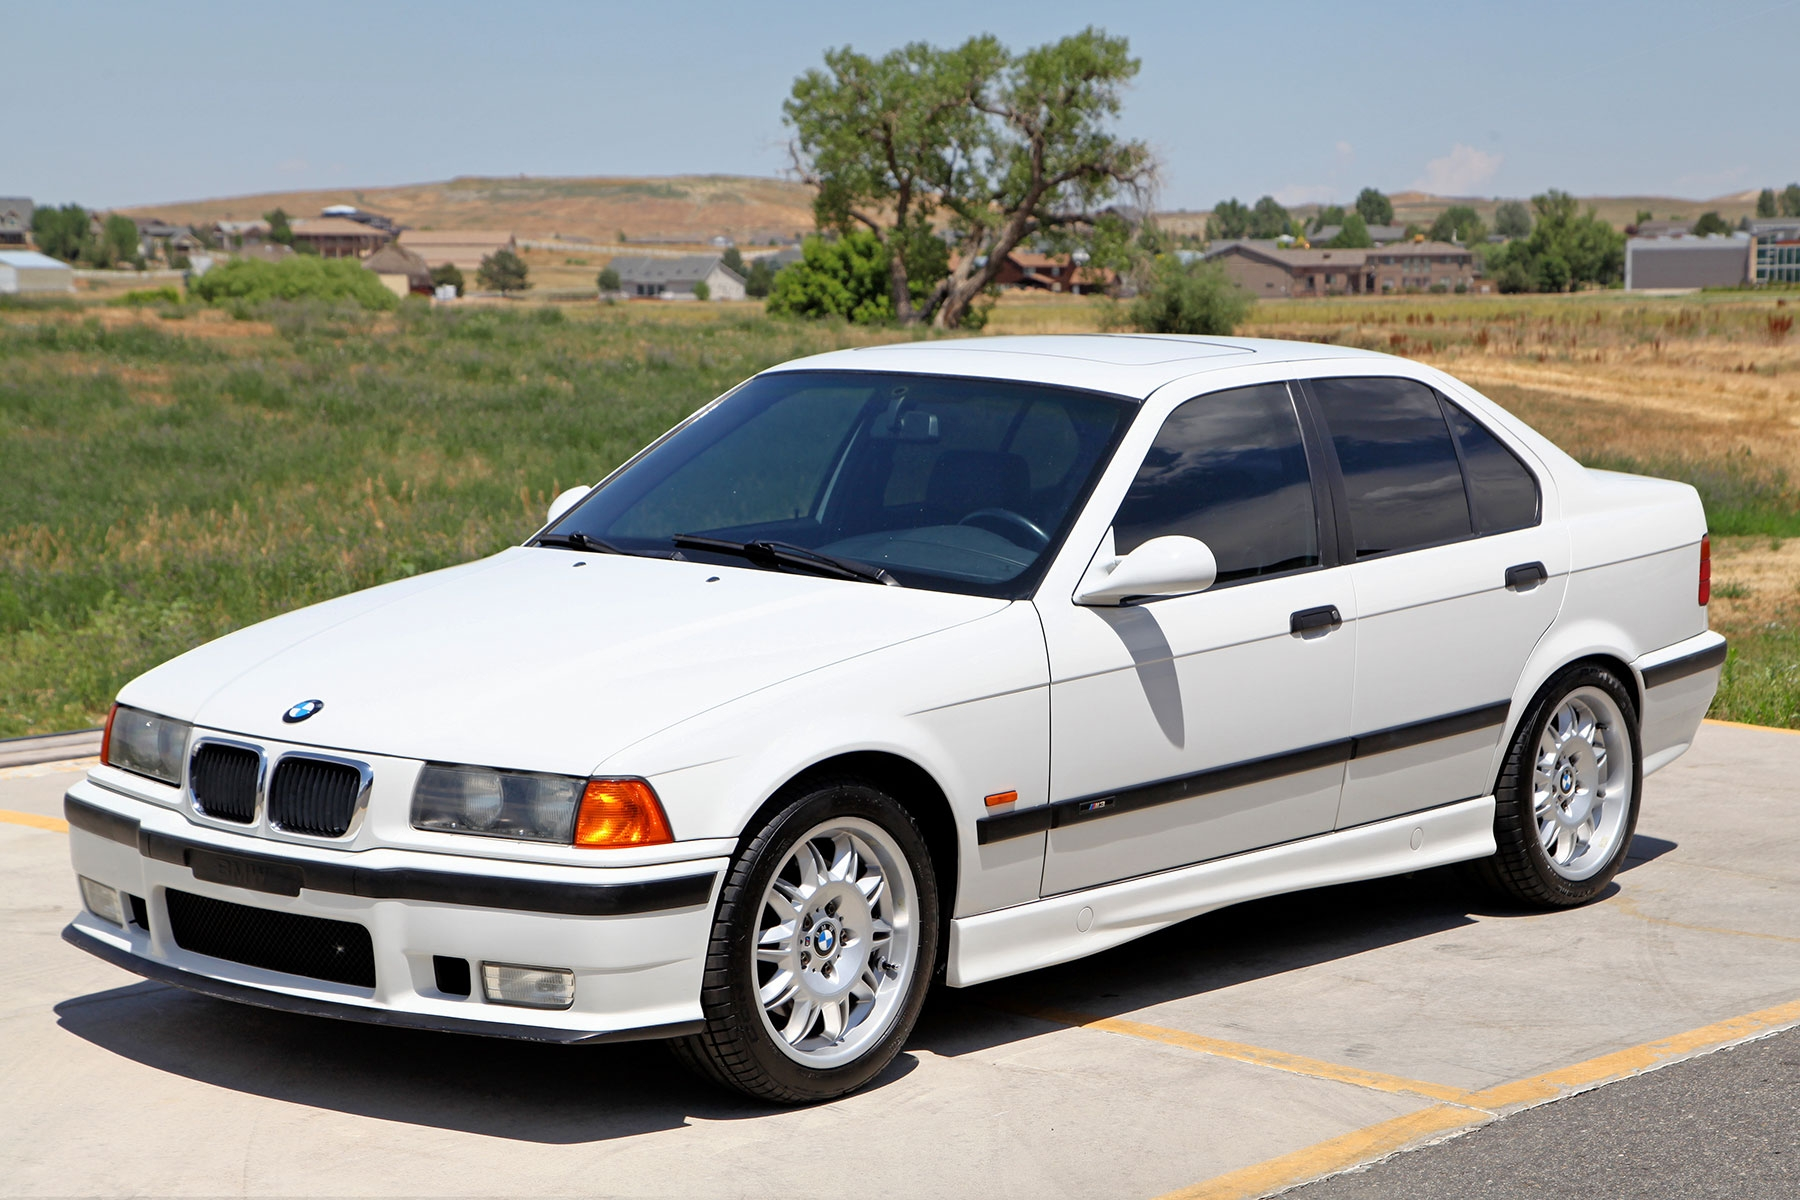 1997 Bmw M3 Sedan M3 4 5 Glen Shelly Auto Brokers Denver Colorado